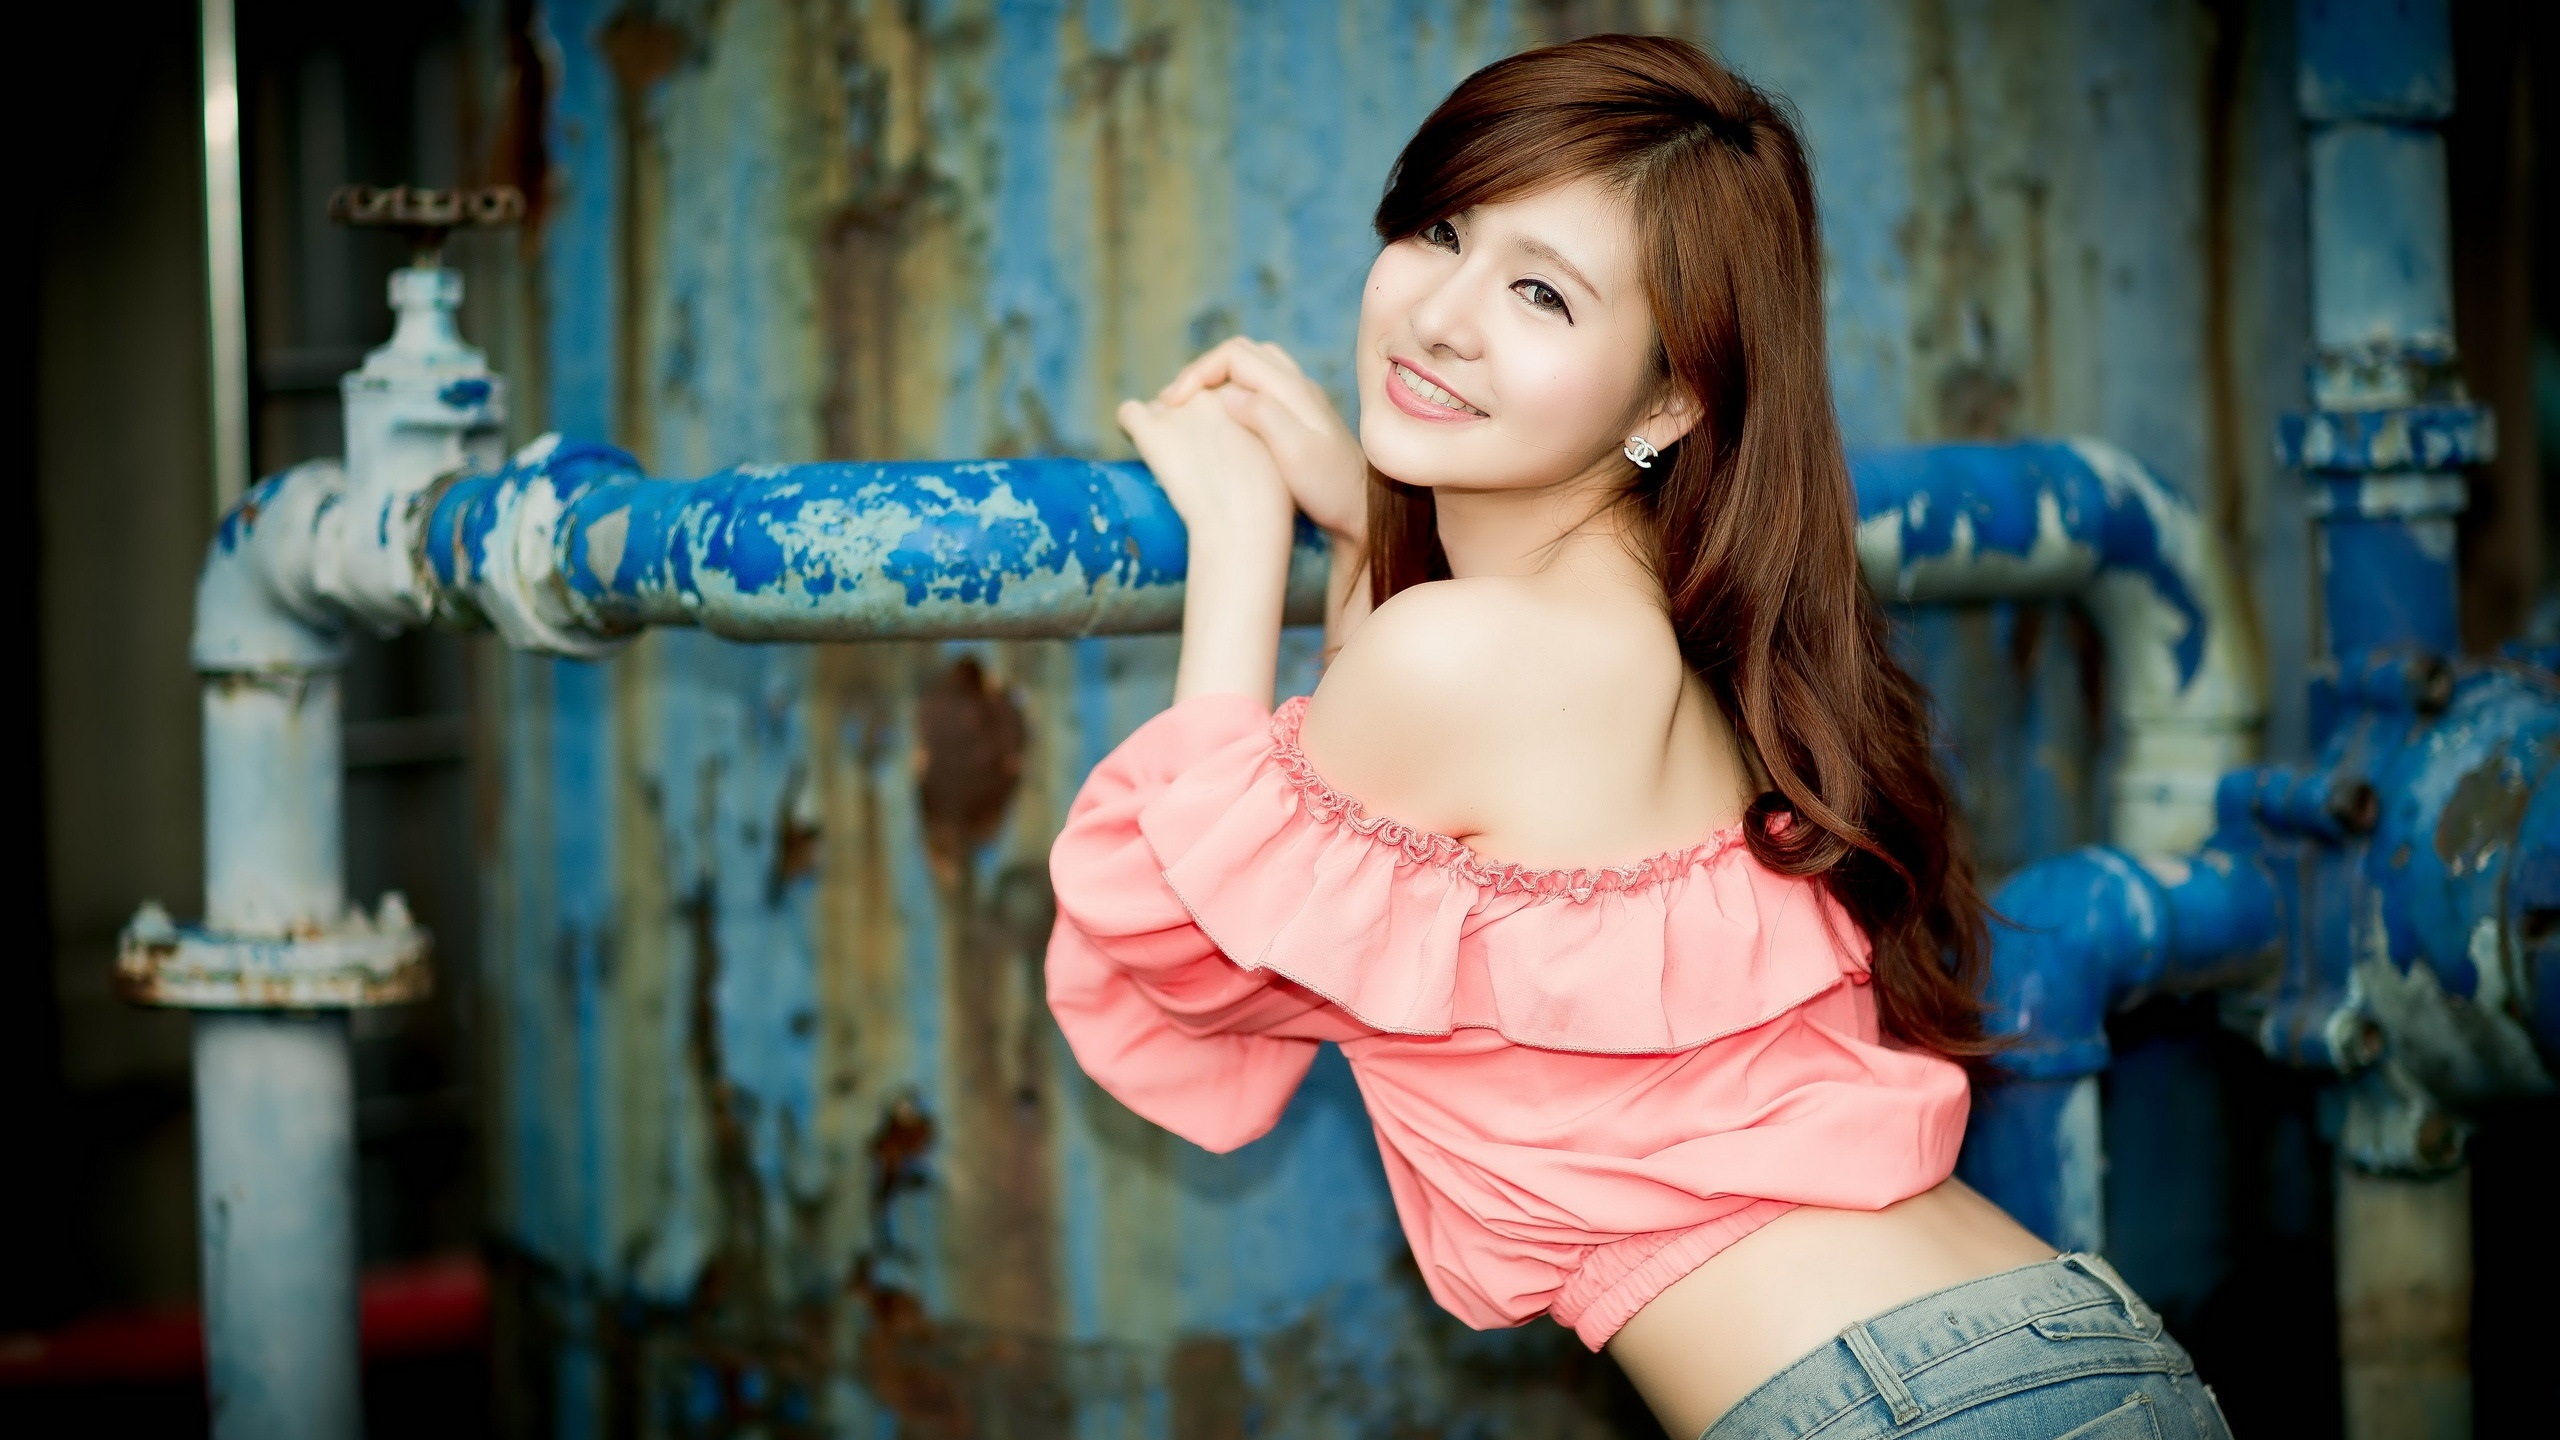 Chinese woman for marriage